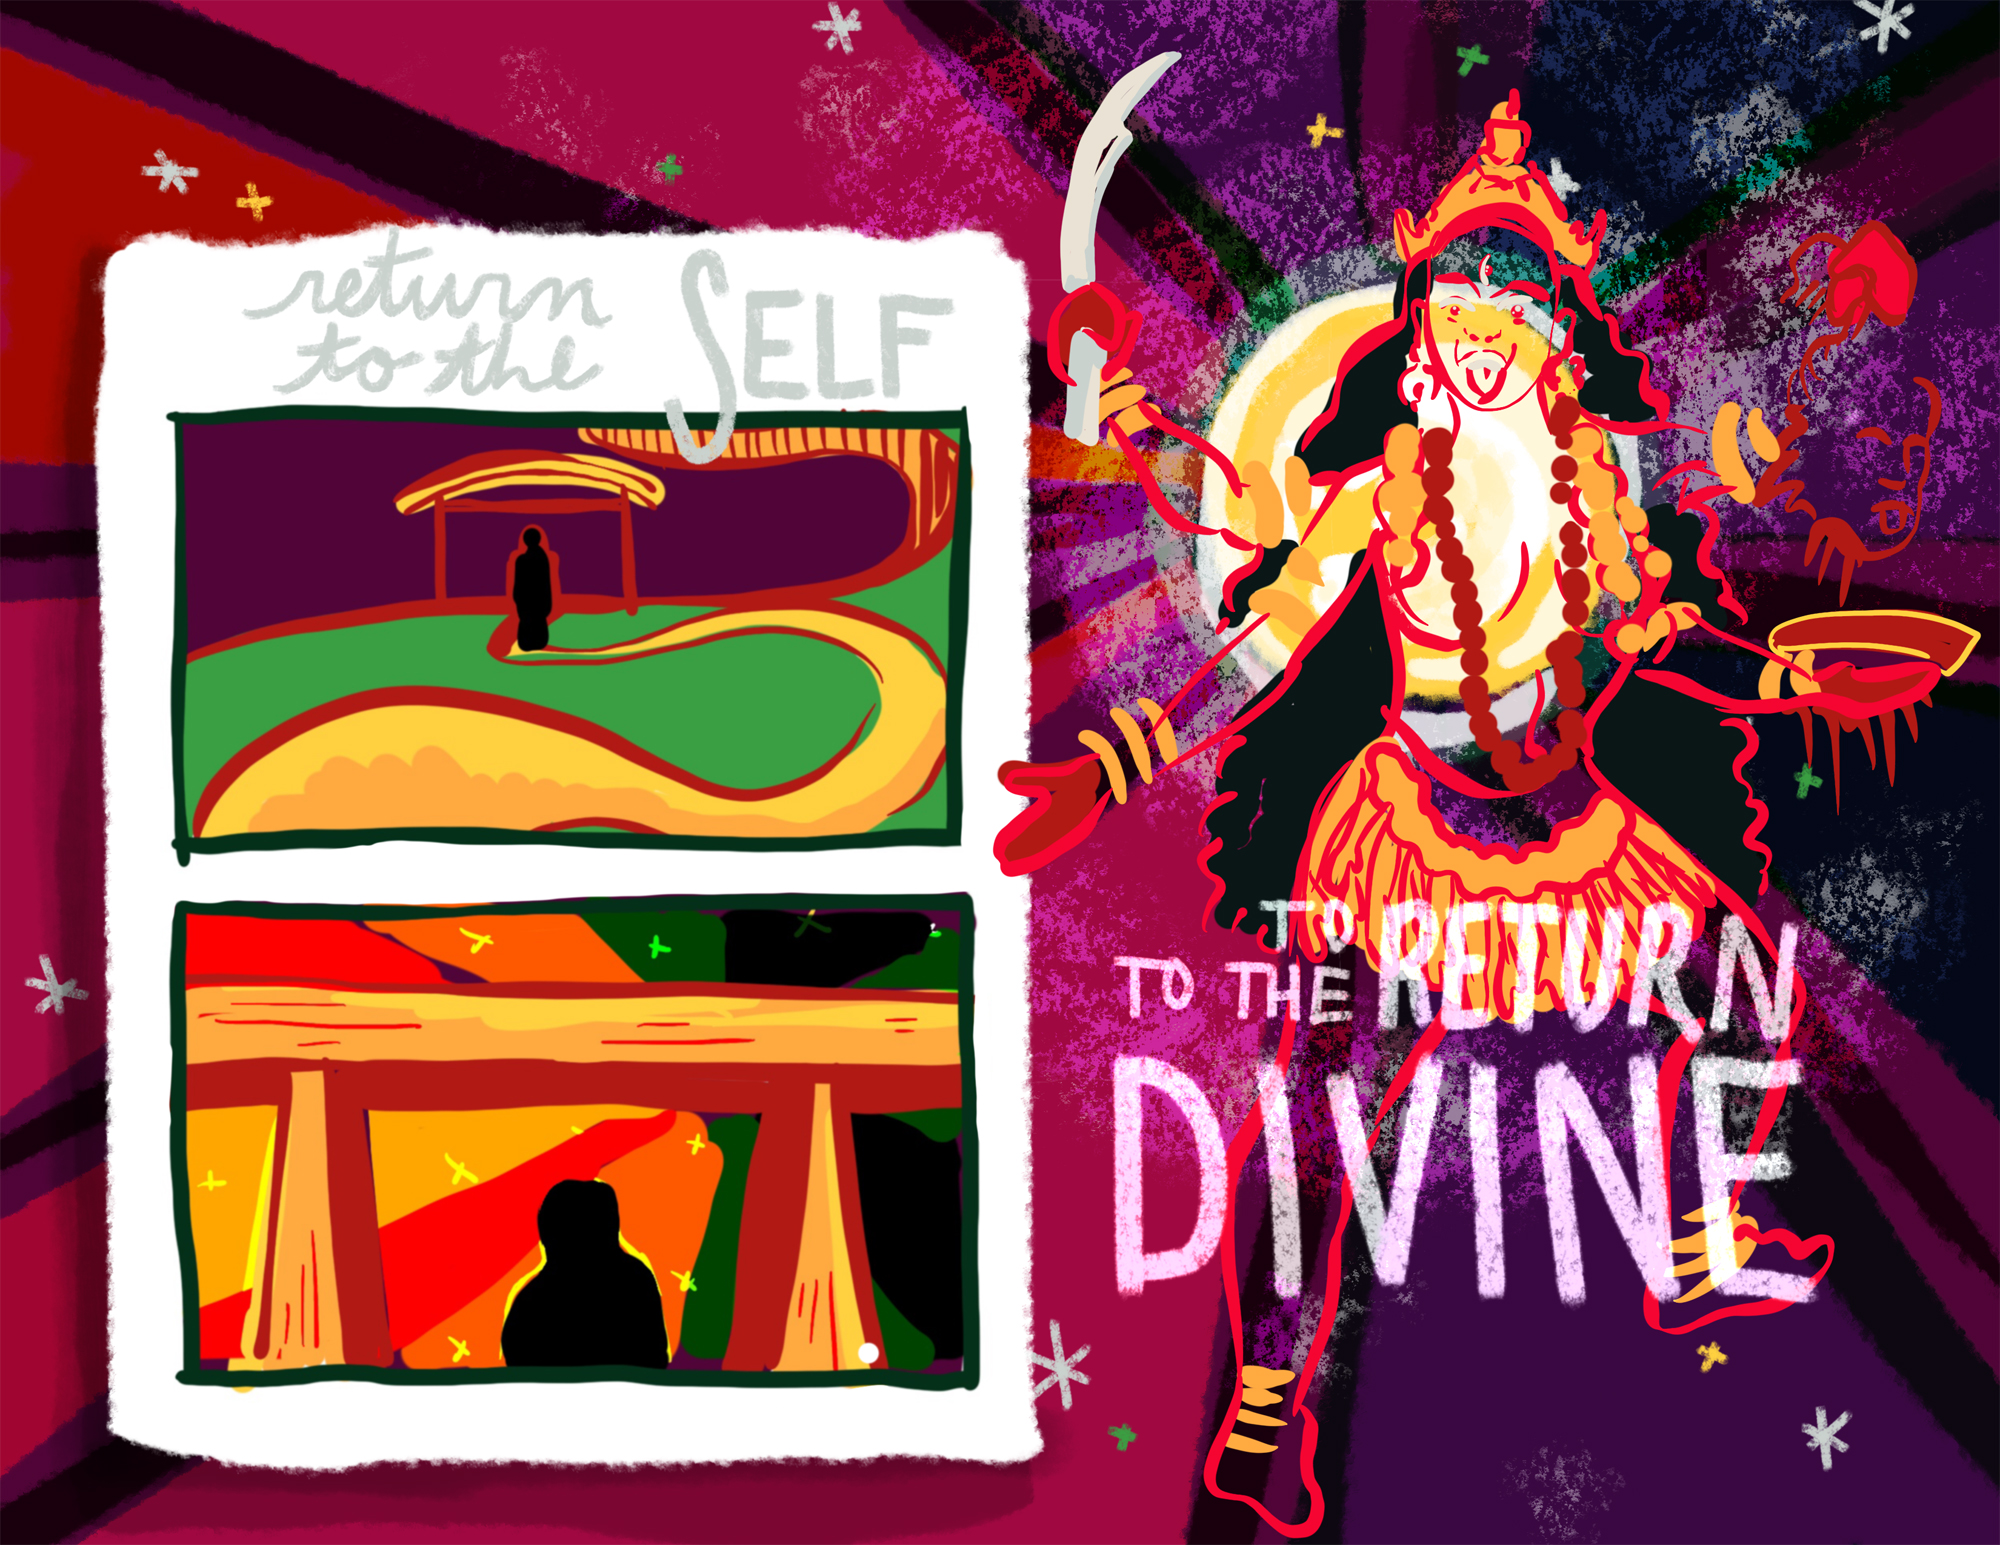 Return to yourself to return to divinity.